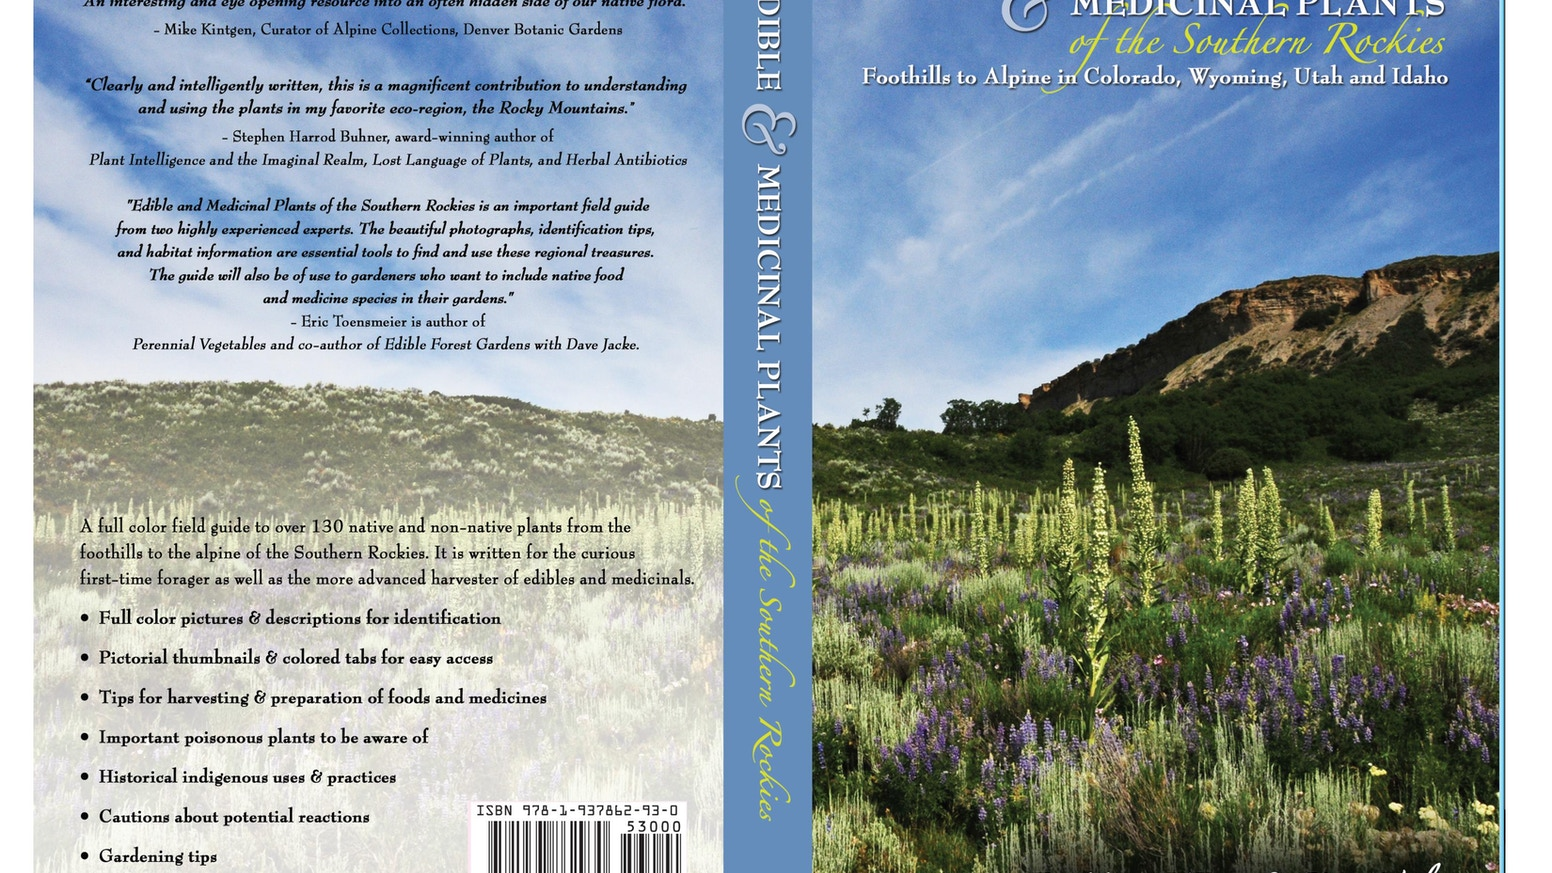 Edible and Medicinal Plants of the Southern Rockies by Mary O'Brien